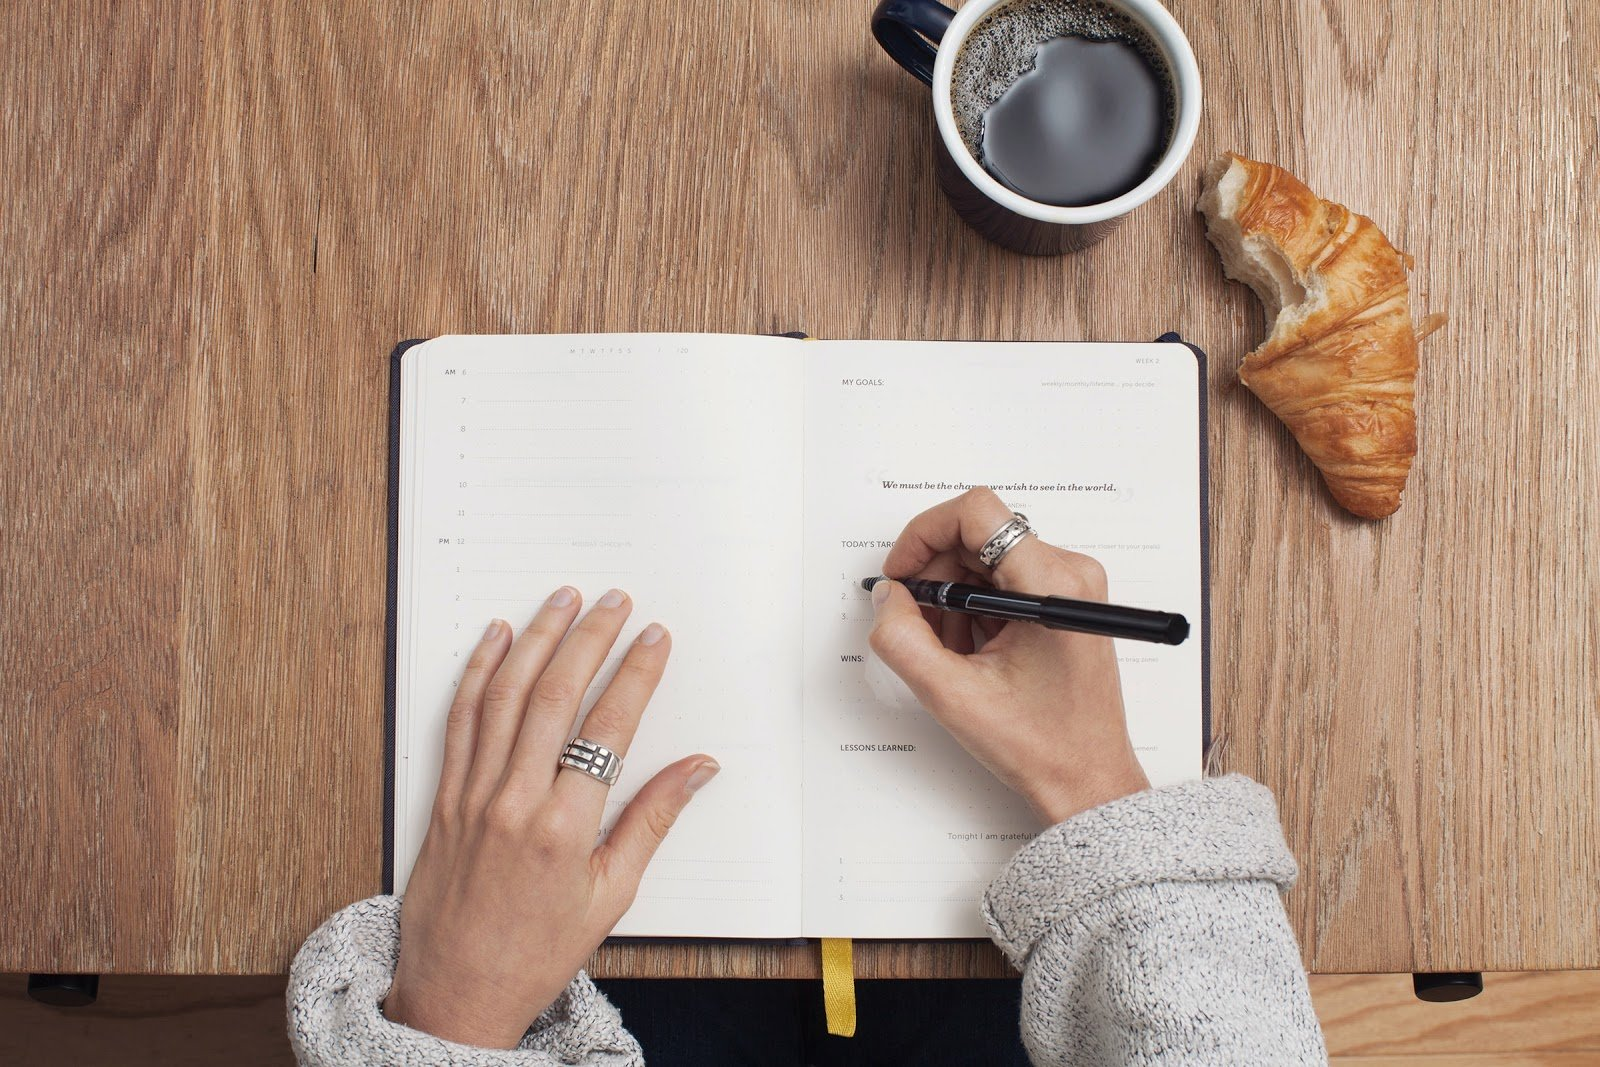 Financial Checklist: What To Focus On